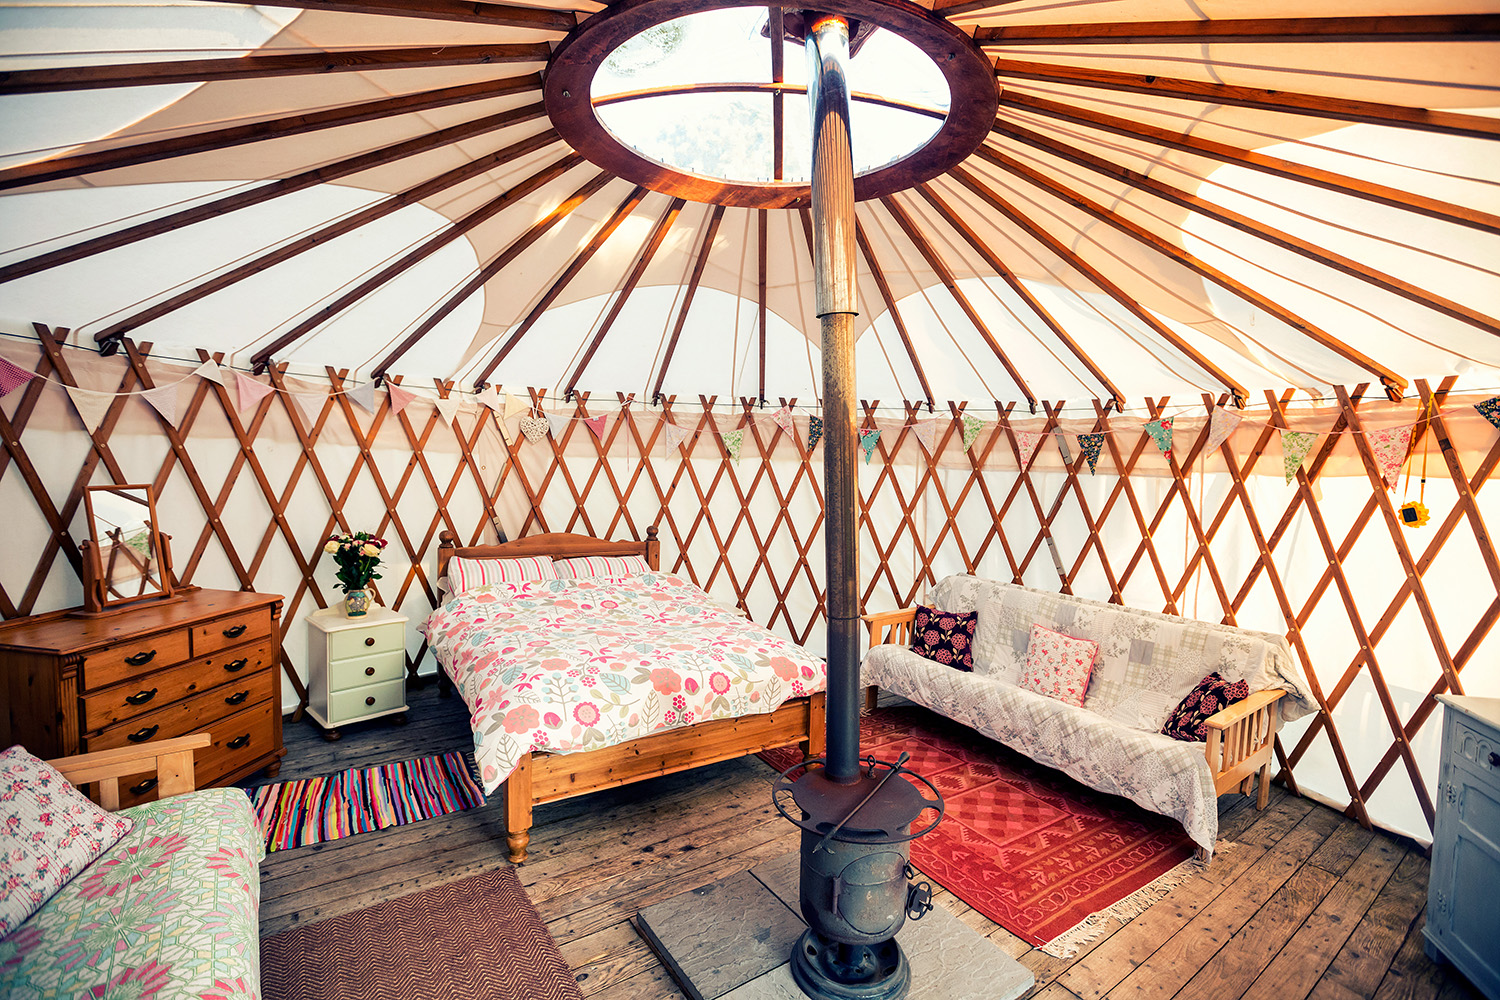 Clover Yurt at CuckoDown Farm